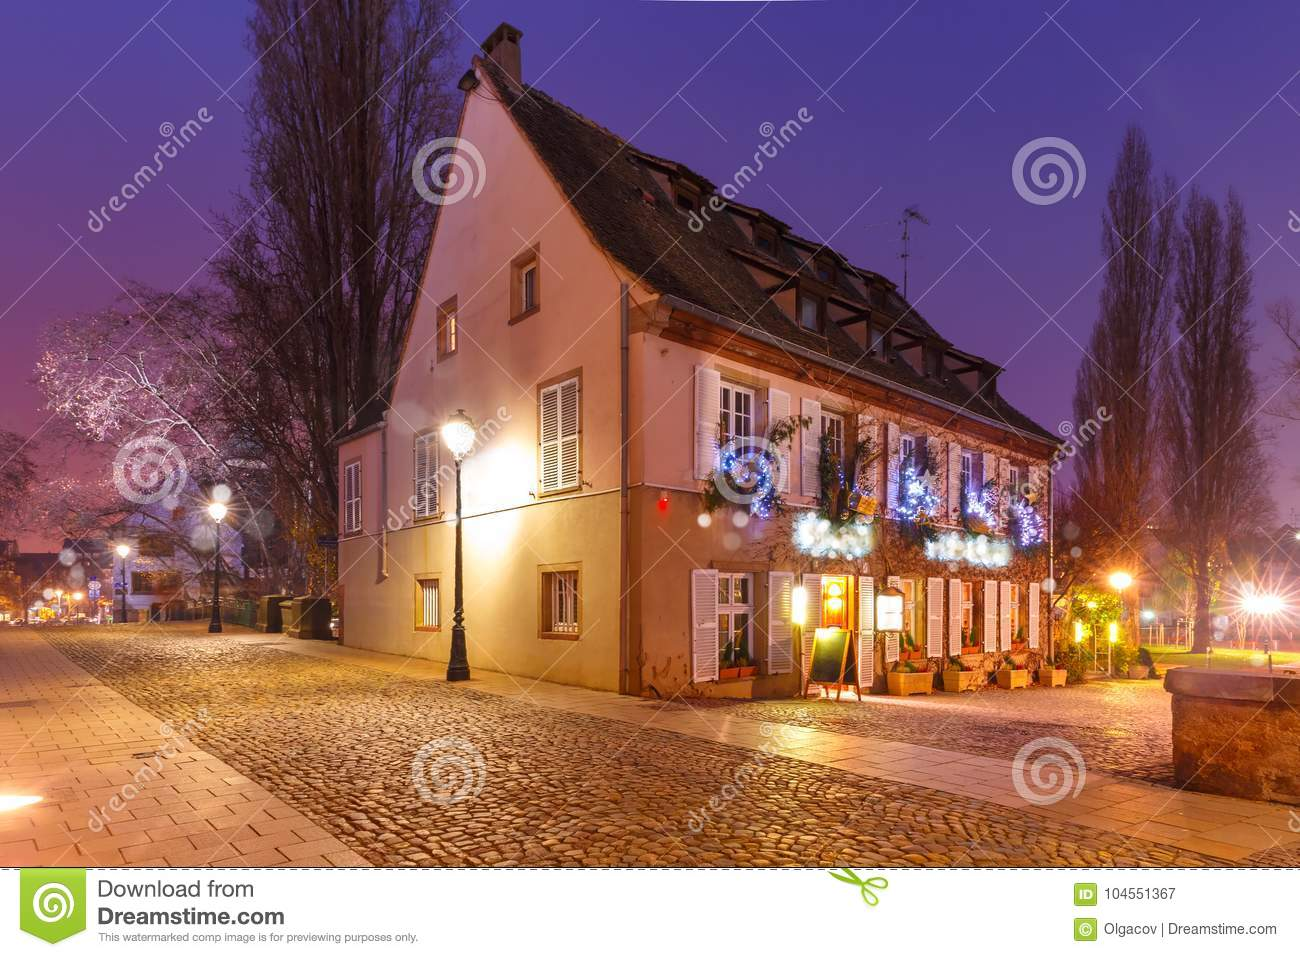 Strasbourg France Christmas Time.Christmas House In Strasbourg Alsace France Stock Image